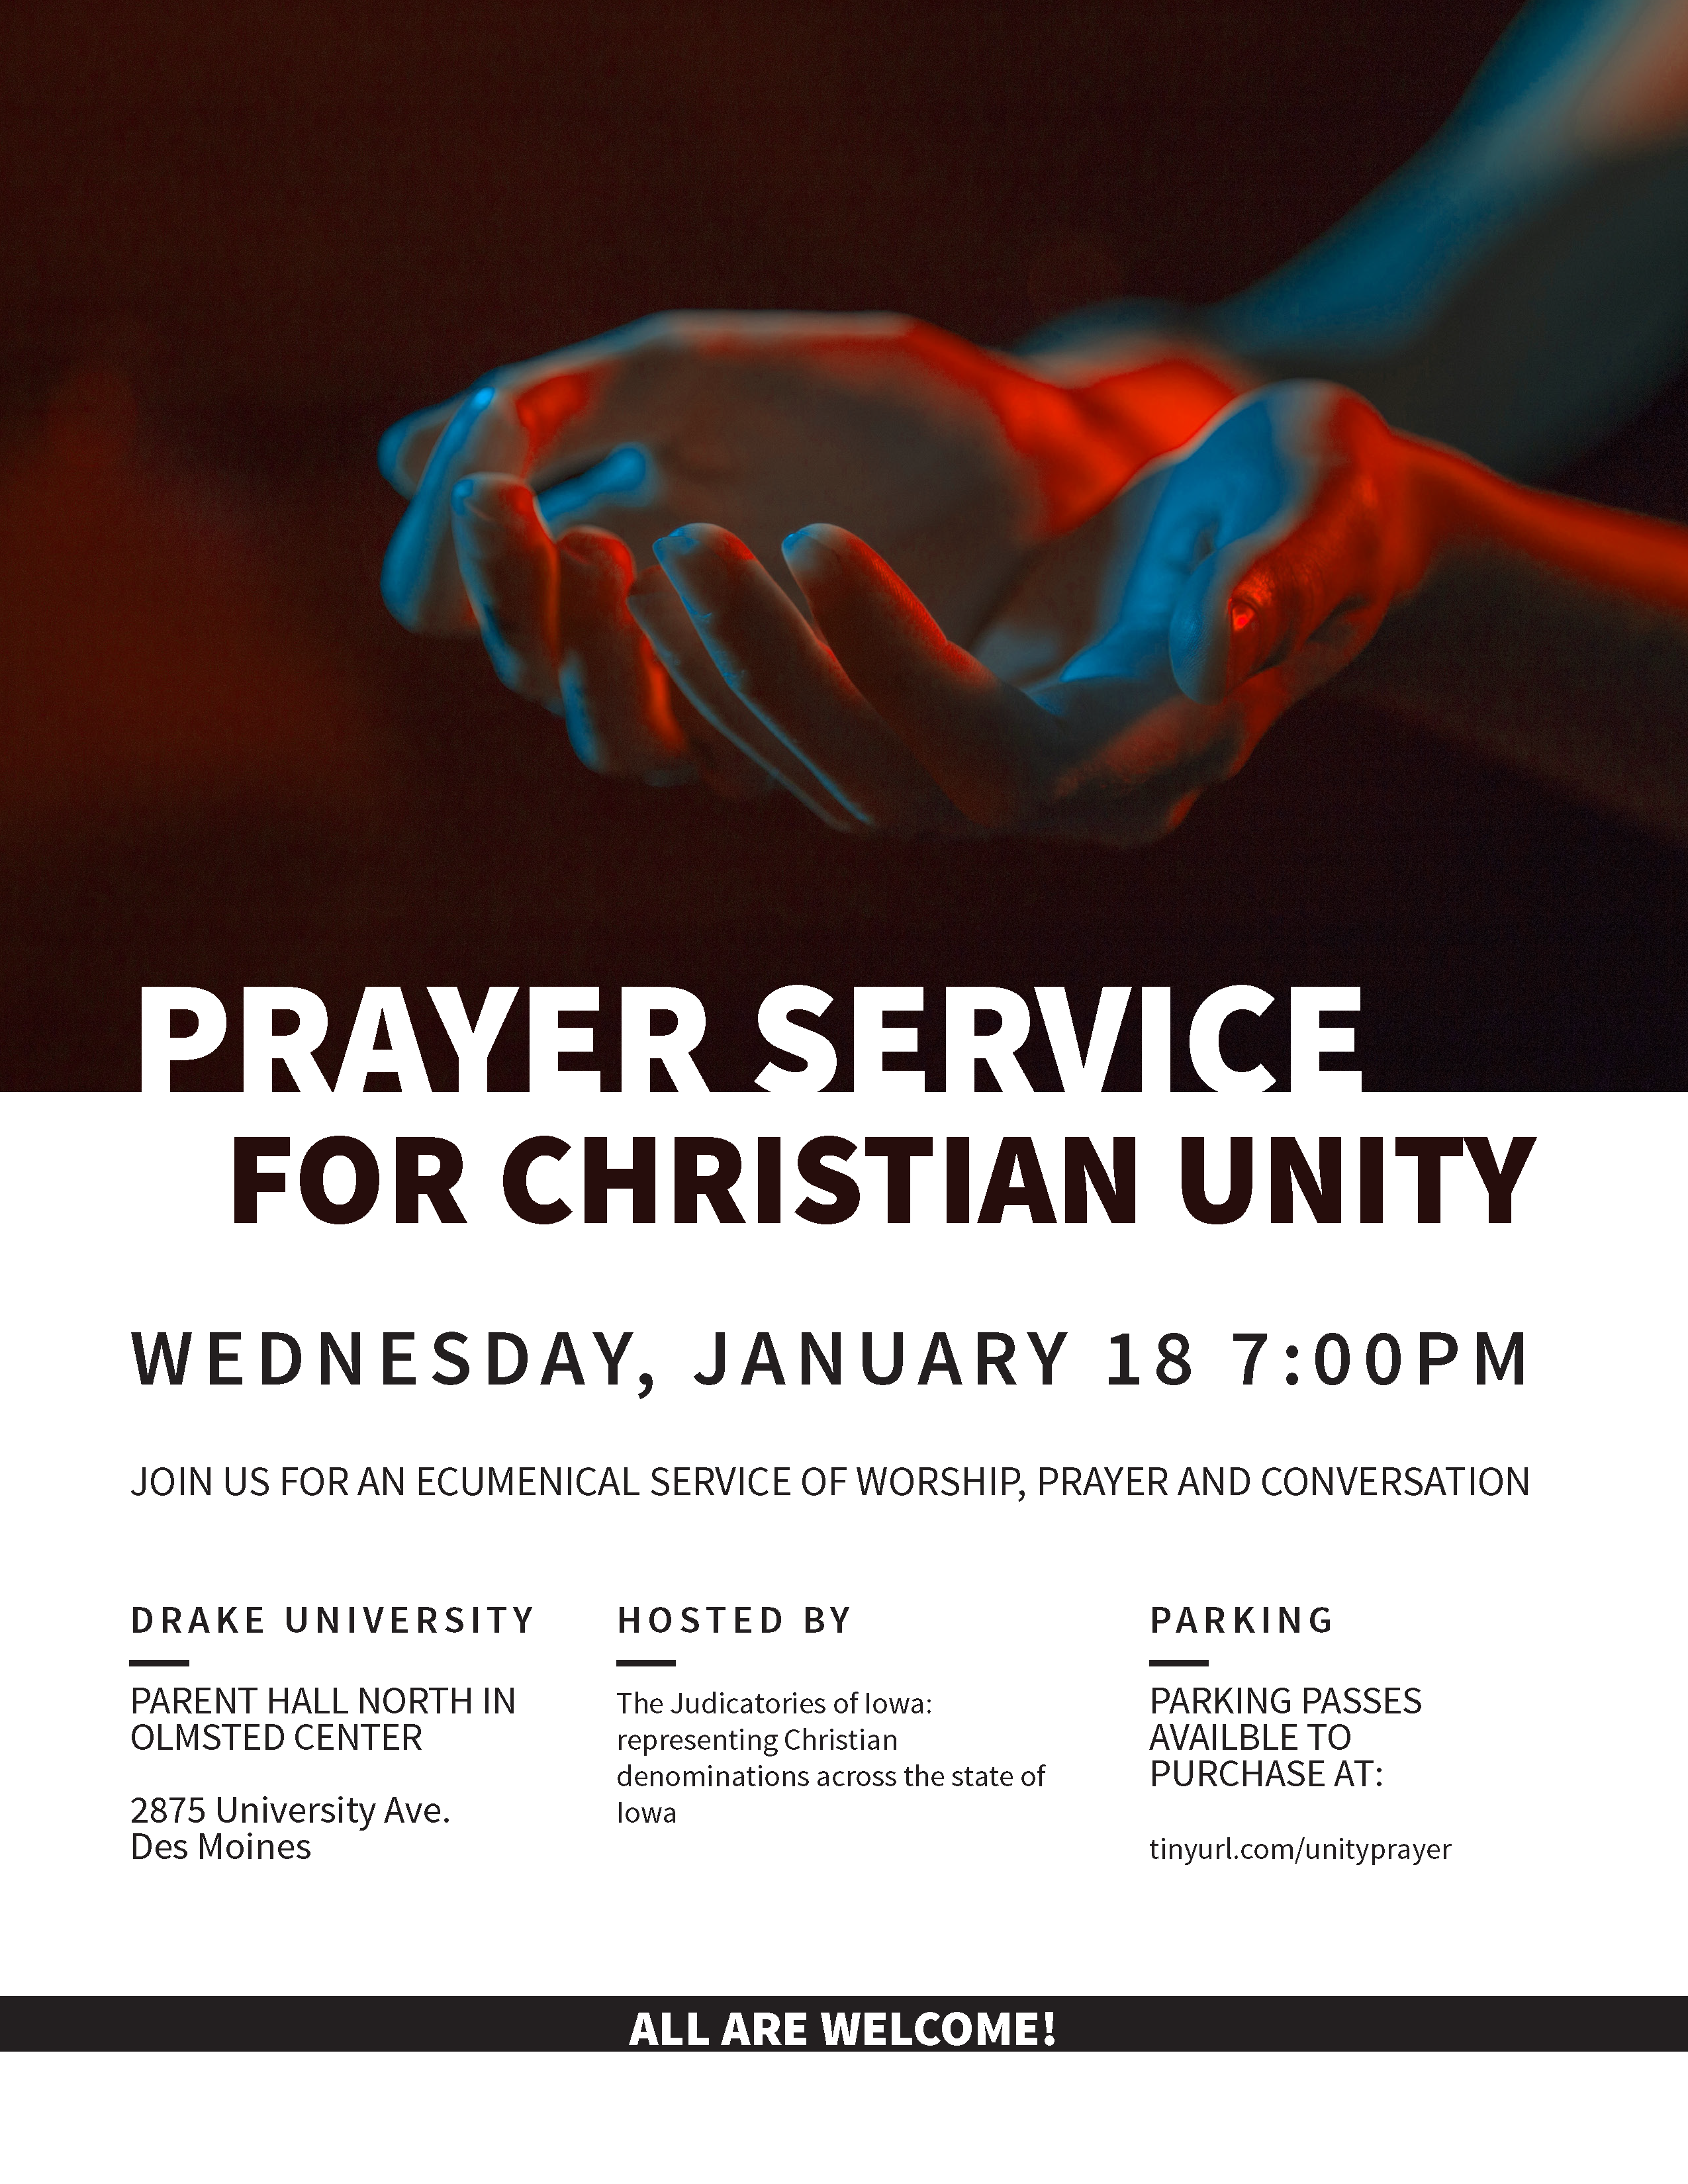 Christian unity prayer service at drake first christian church des unity invitation flyerposter altavistaventures Choice Image